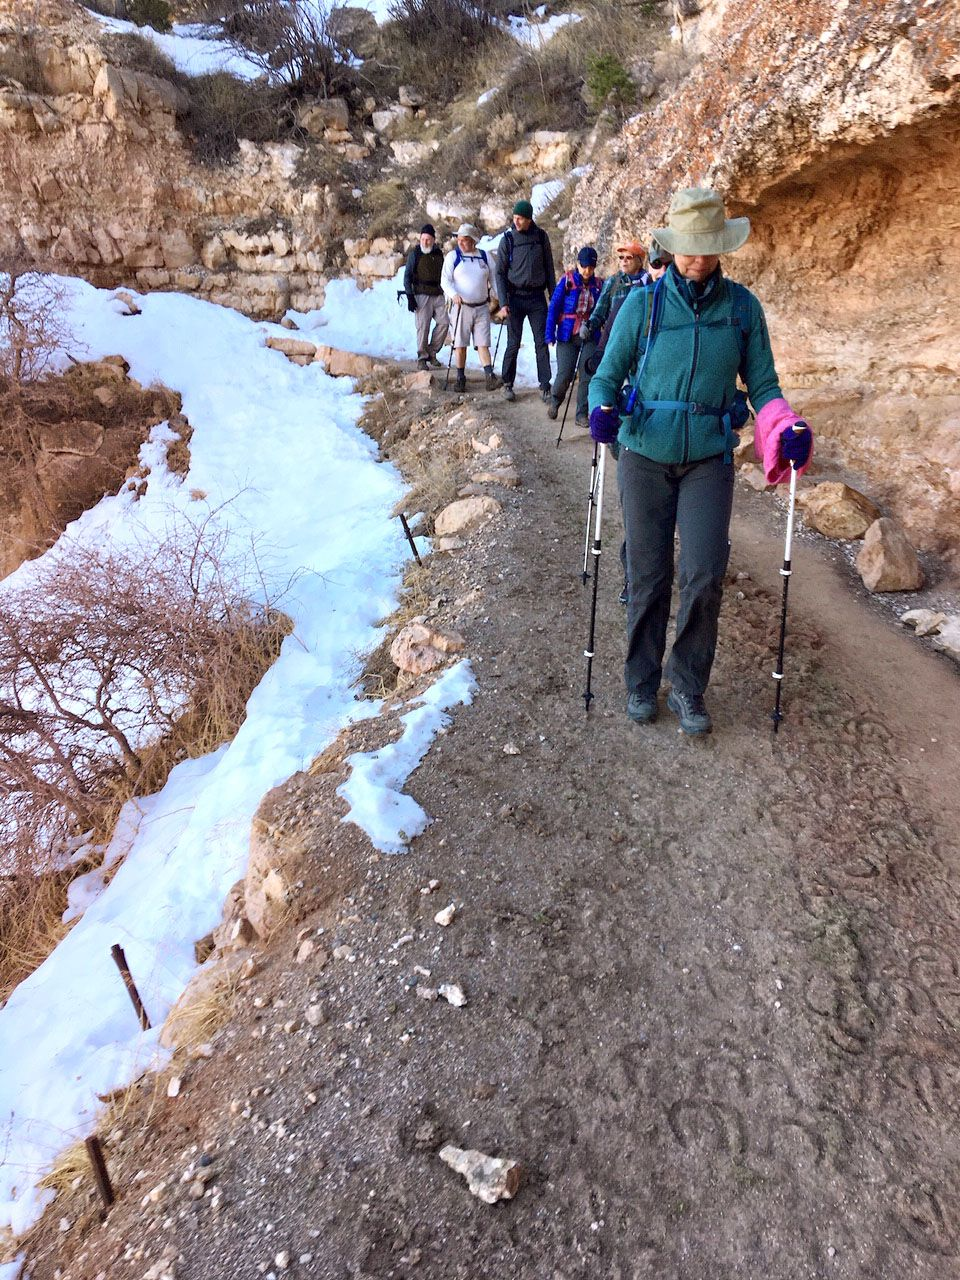 Lane Transou (front) carefully navigates the Bright Angel trail in Grand Canyon National Park. She was there with her two sisters to celebrate the milestone birthday of her sister Lynda, who was right behind her in this photo.